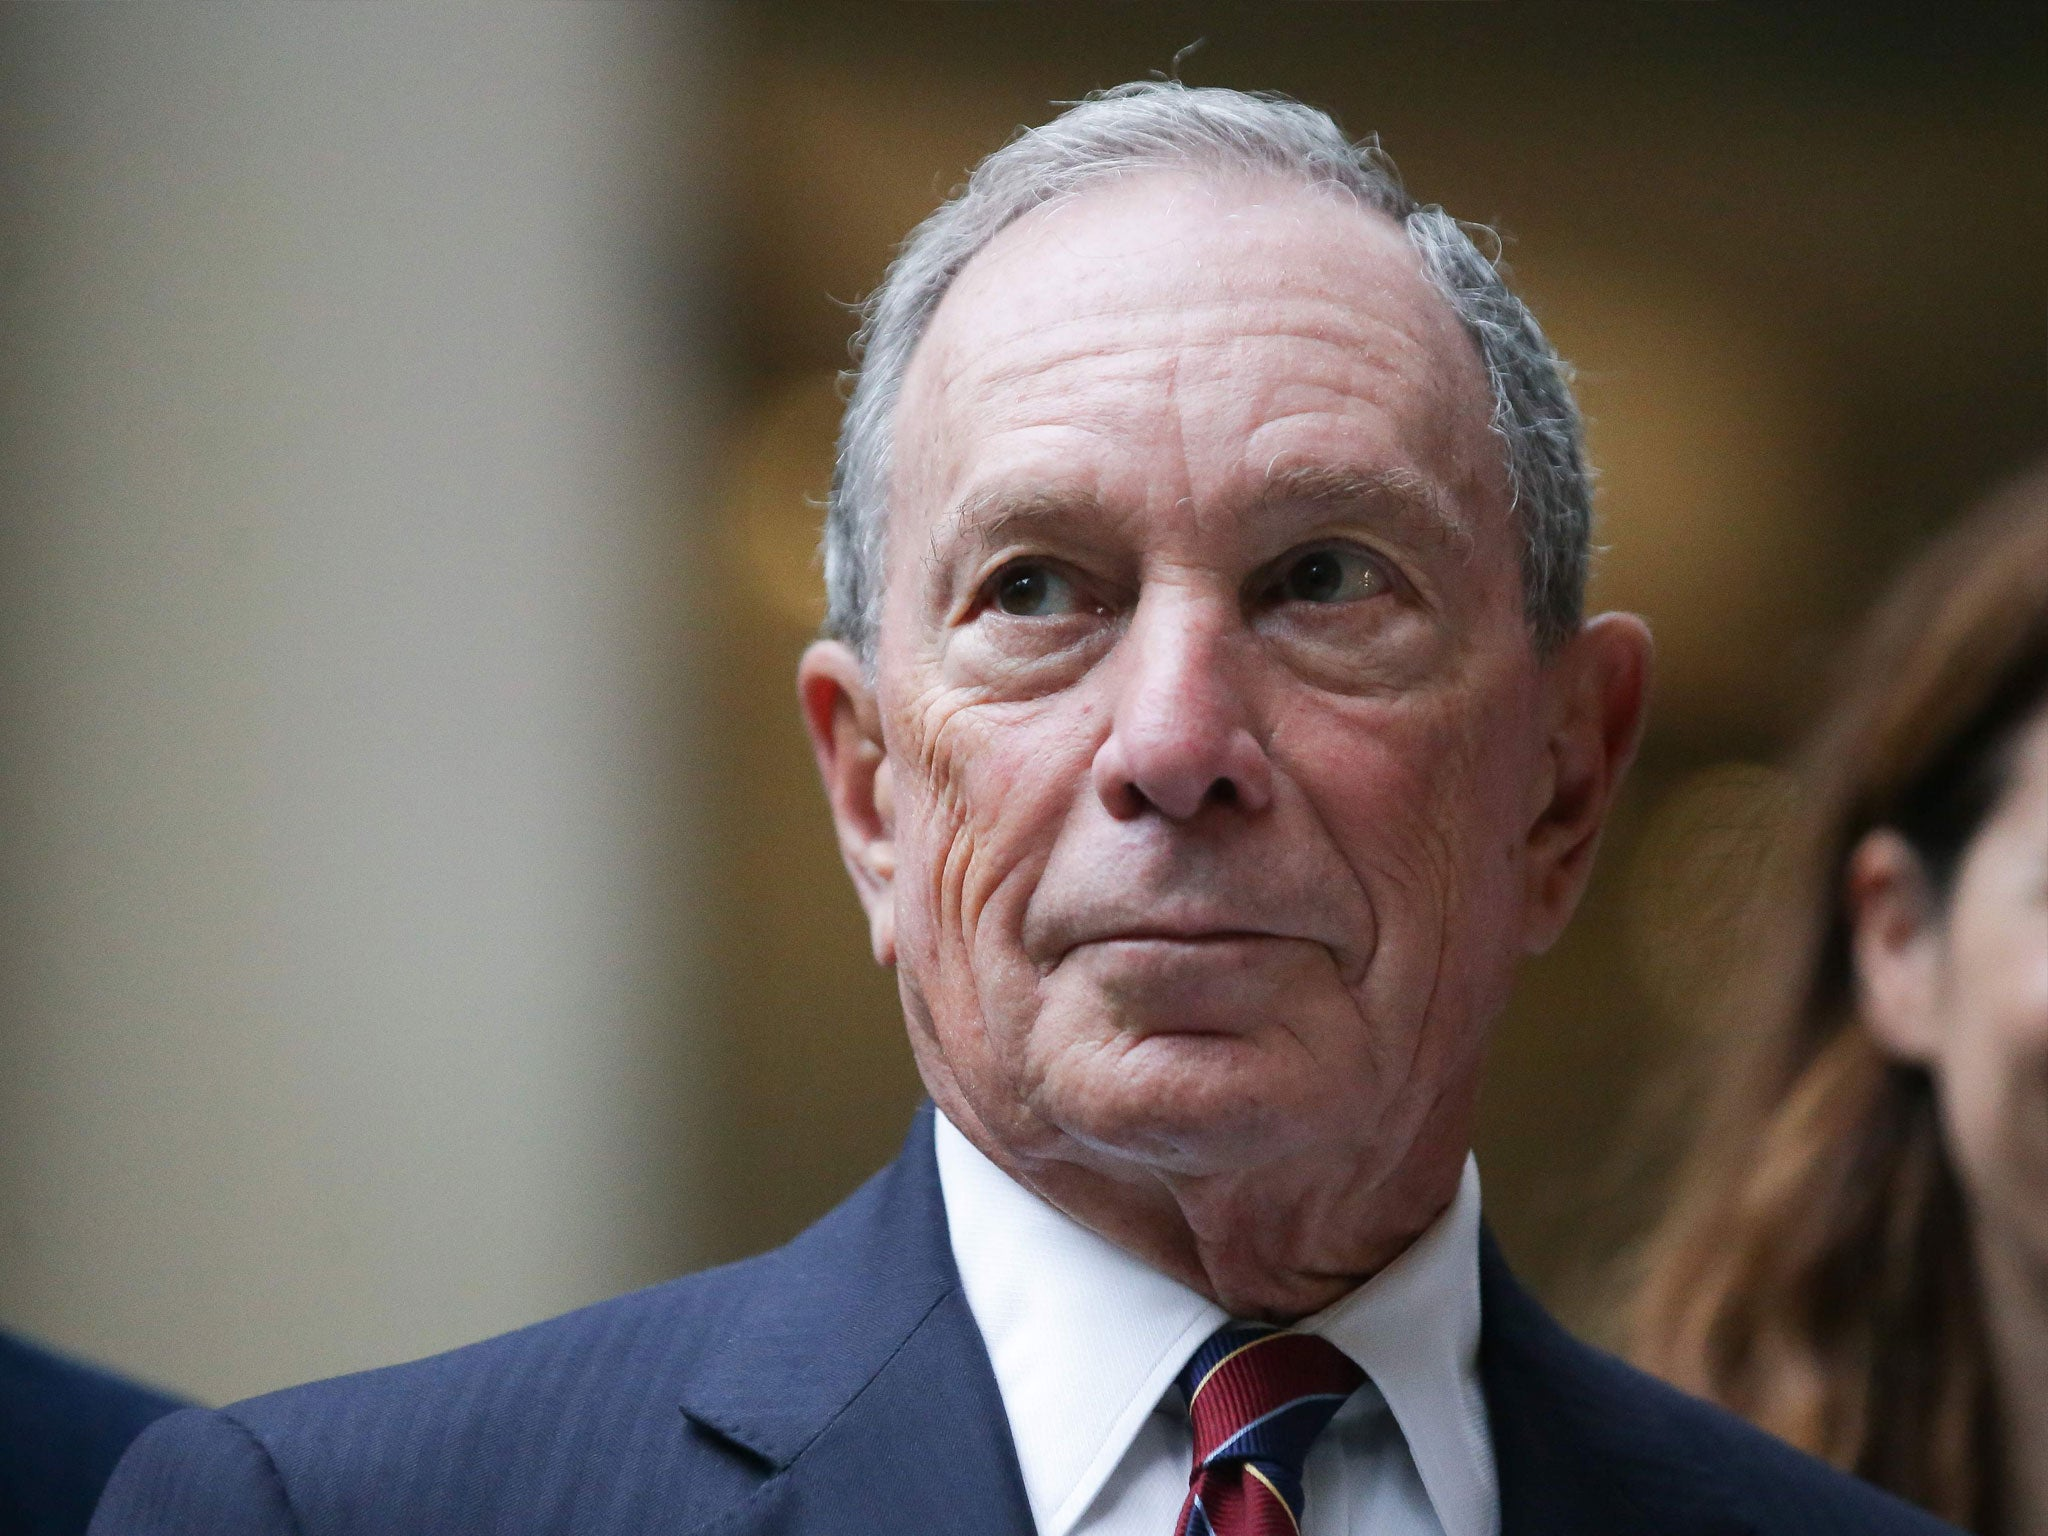 Michael Bloomberg pledges $80m to help Democrats in 2018 midterms